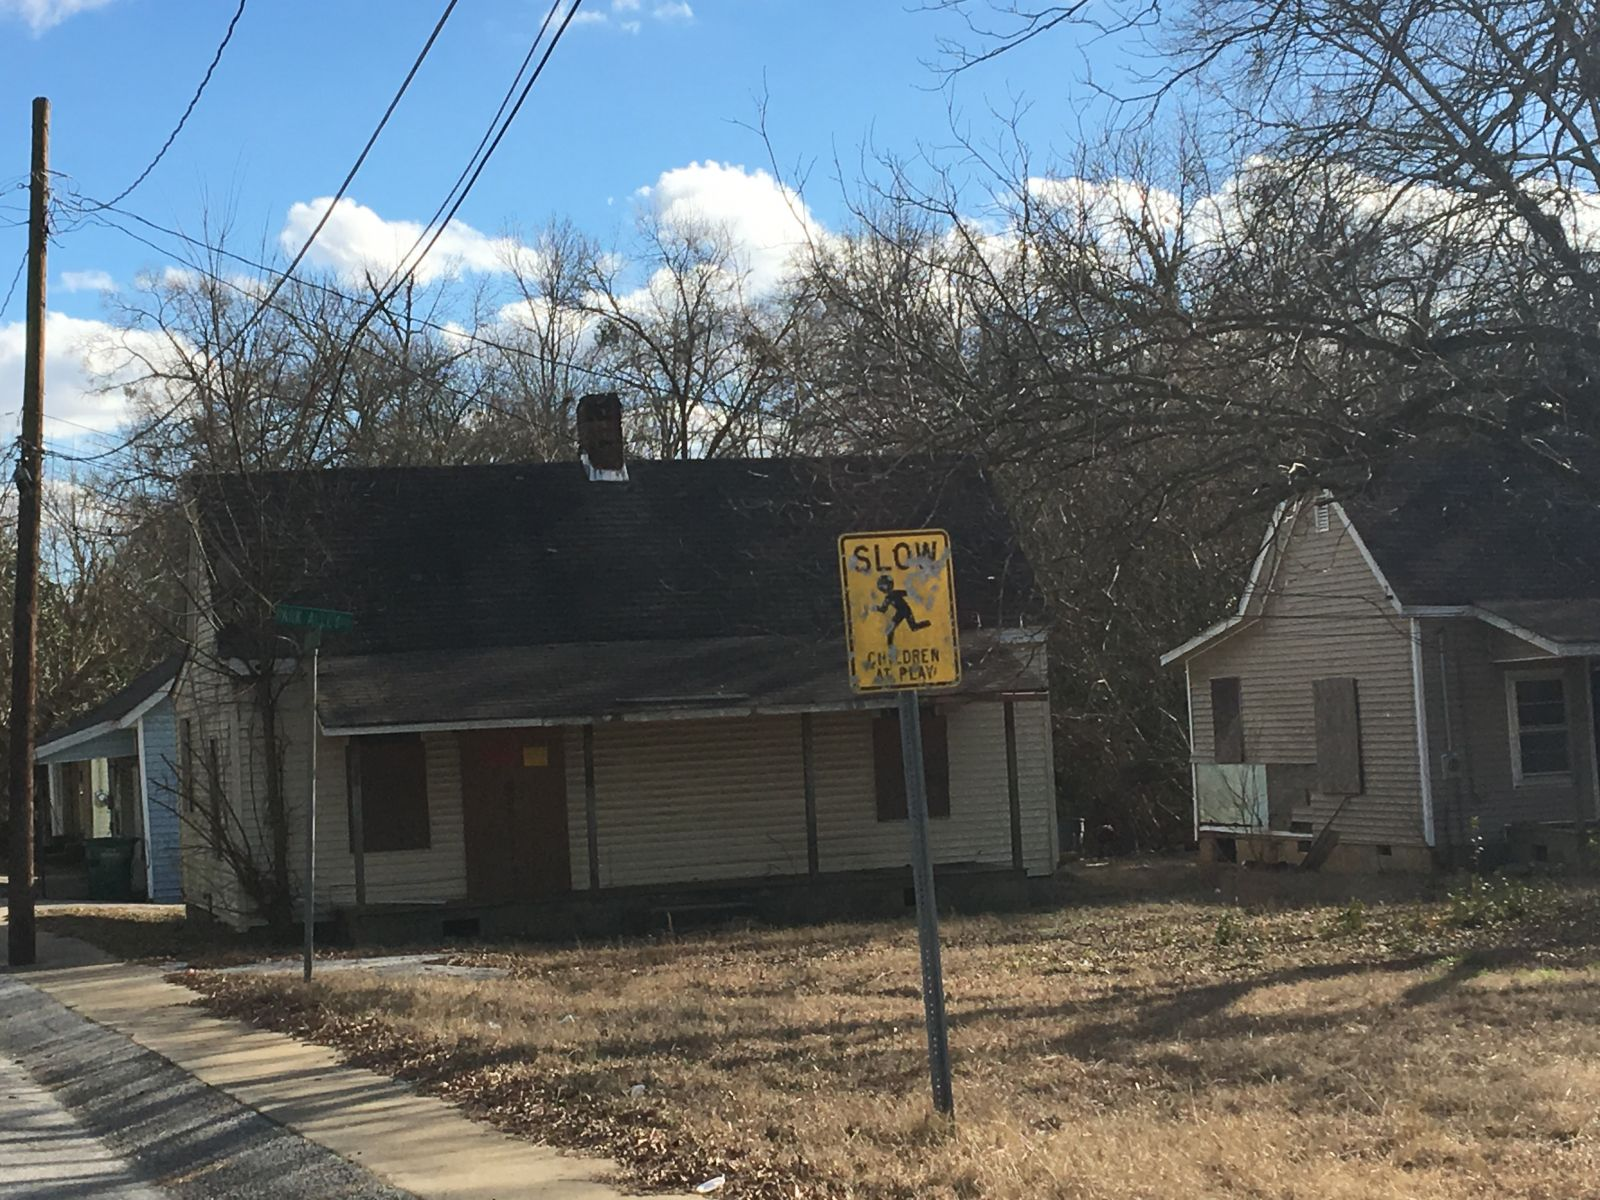 The Greenwood Area Habitat for Humanity plans to use $825,000 in state funding to demolish blighted properties in the North Edgefield neighborhood. (Photo provided)